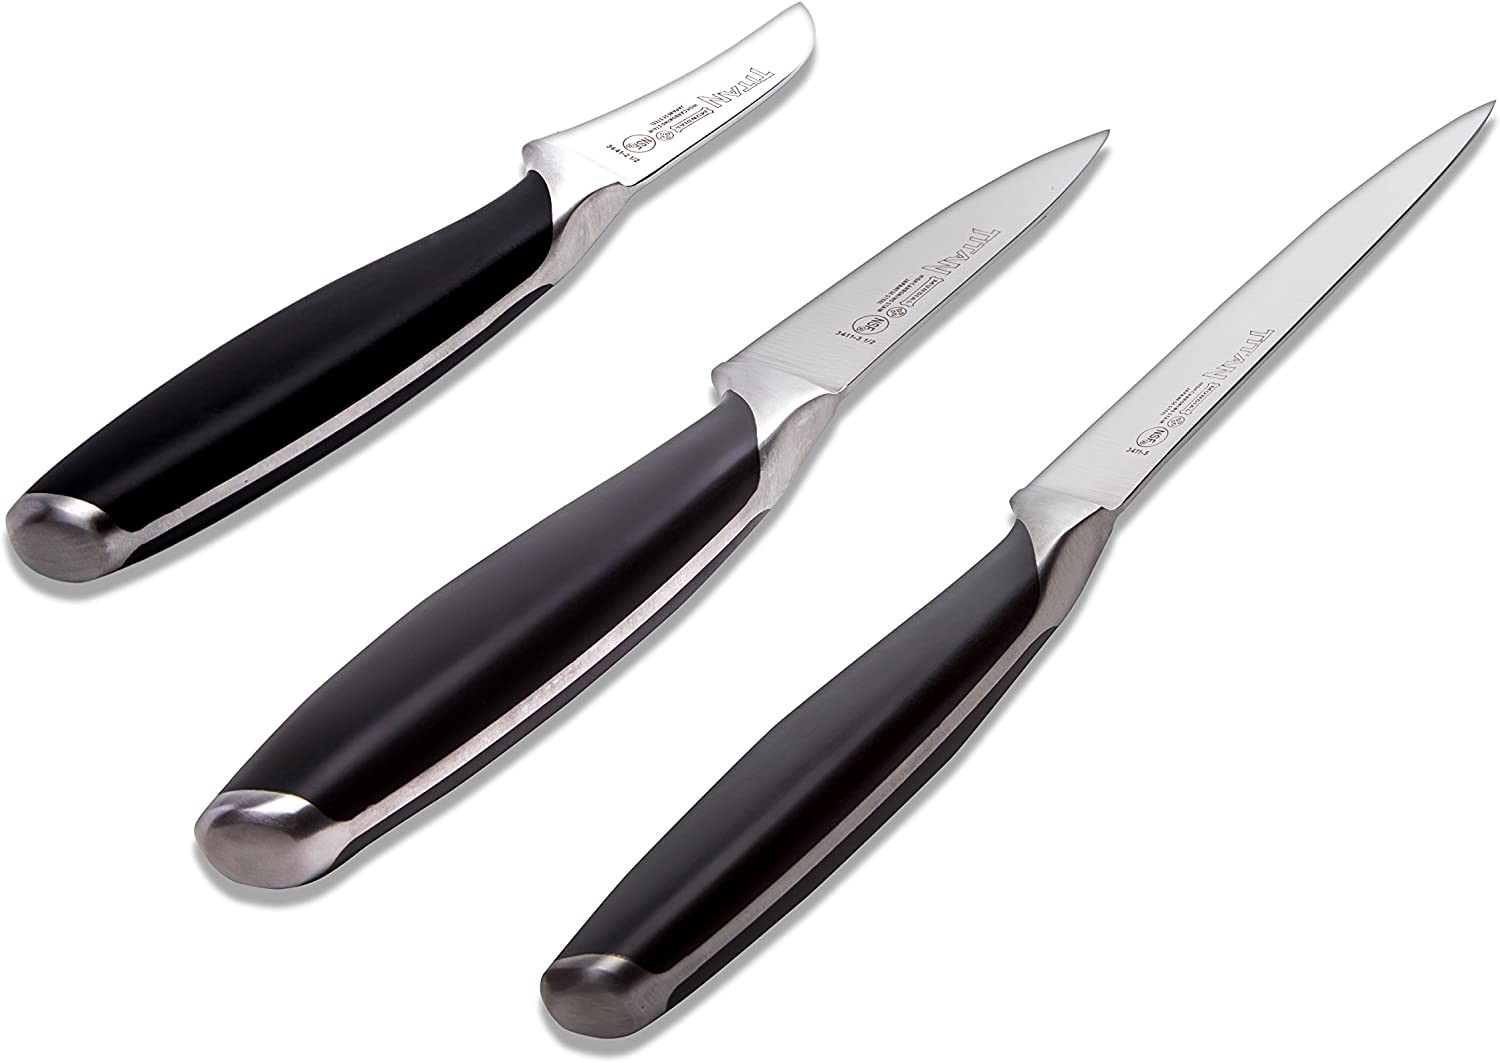 Mundial Titan Series 3 Pieces Knives Set Black Handle 3 5 In Paring 5 In Utility And 2 5 In Peeling Knives Kitchen Dining